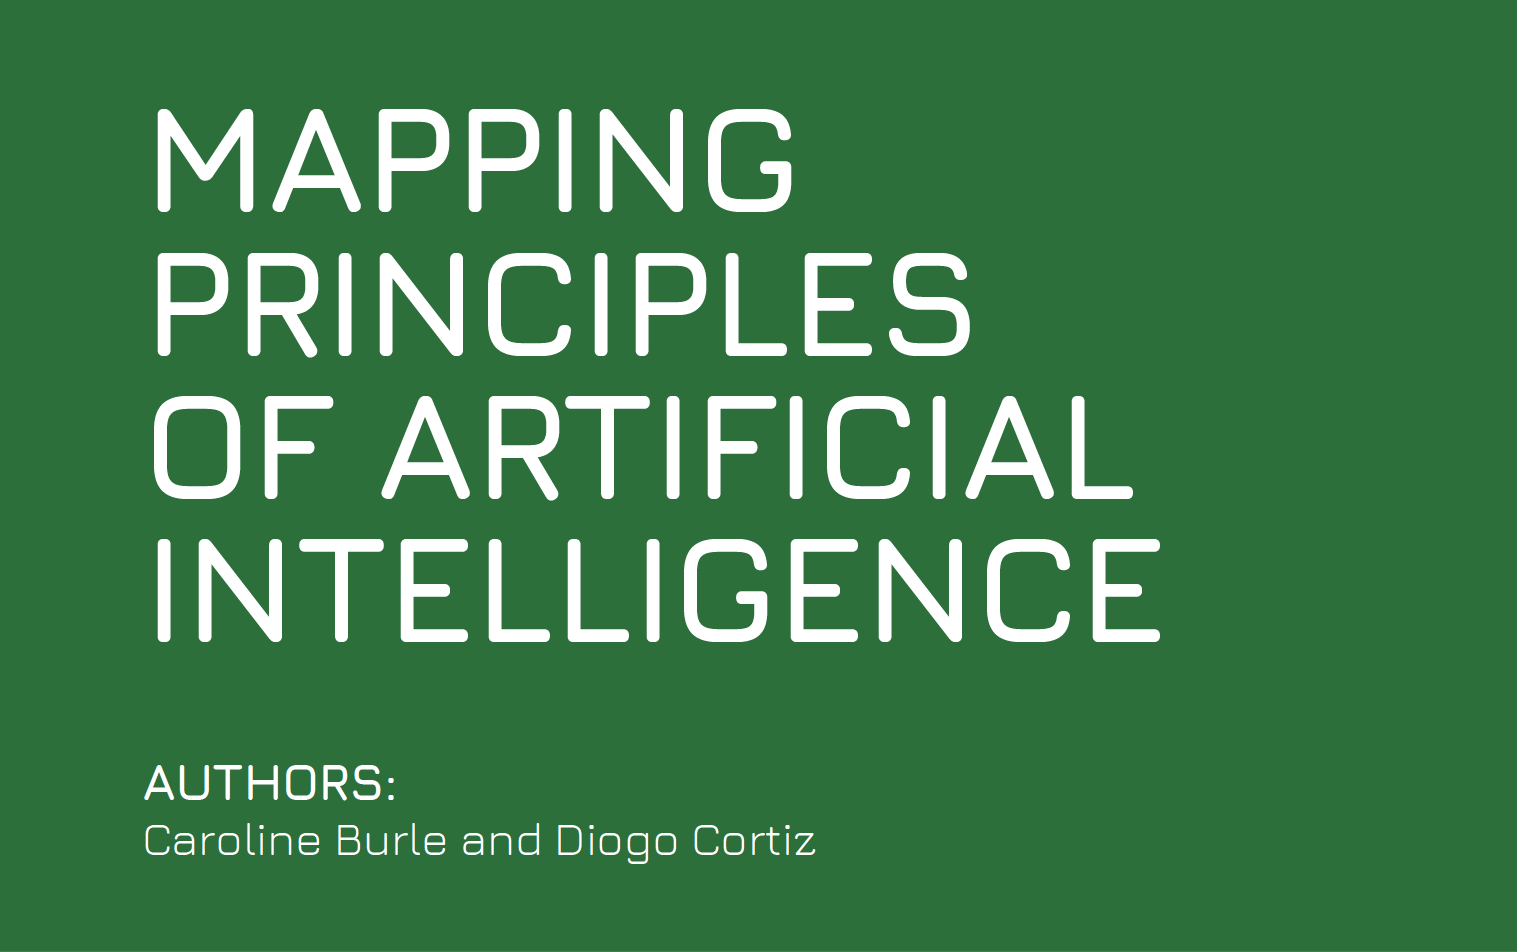 Mapping Principles of Artificial Intelligence